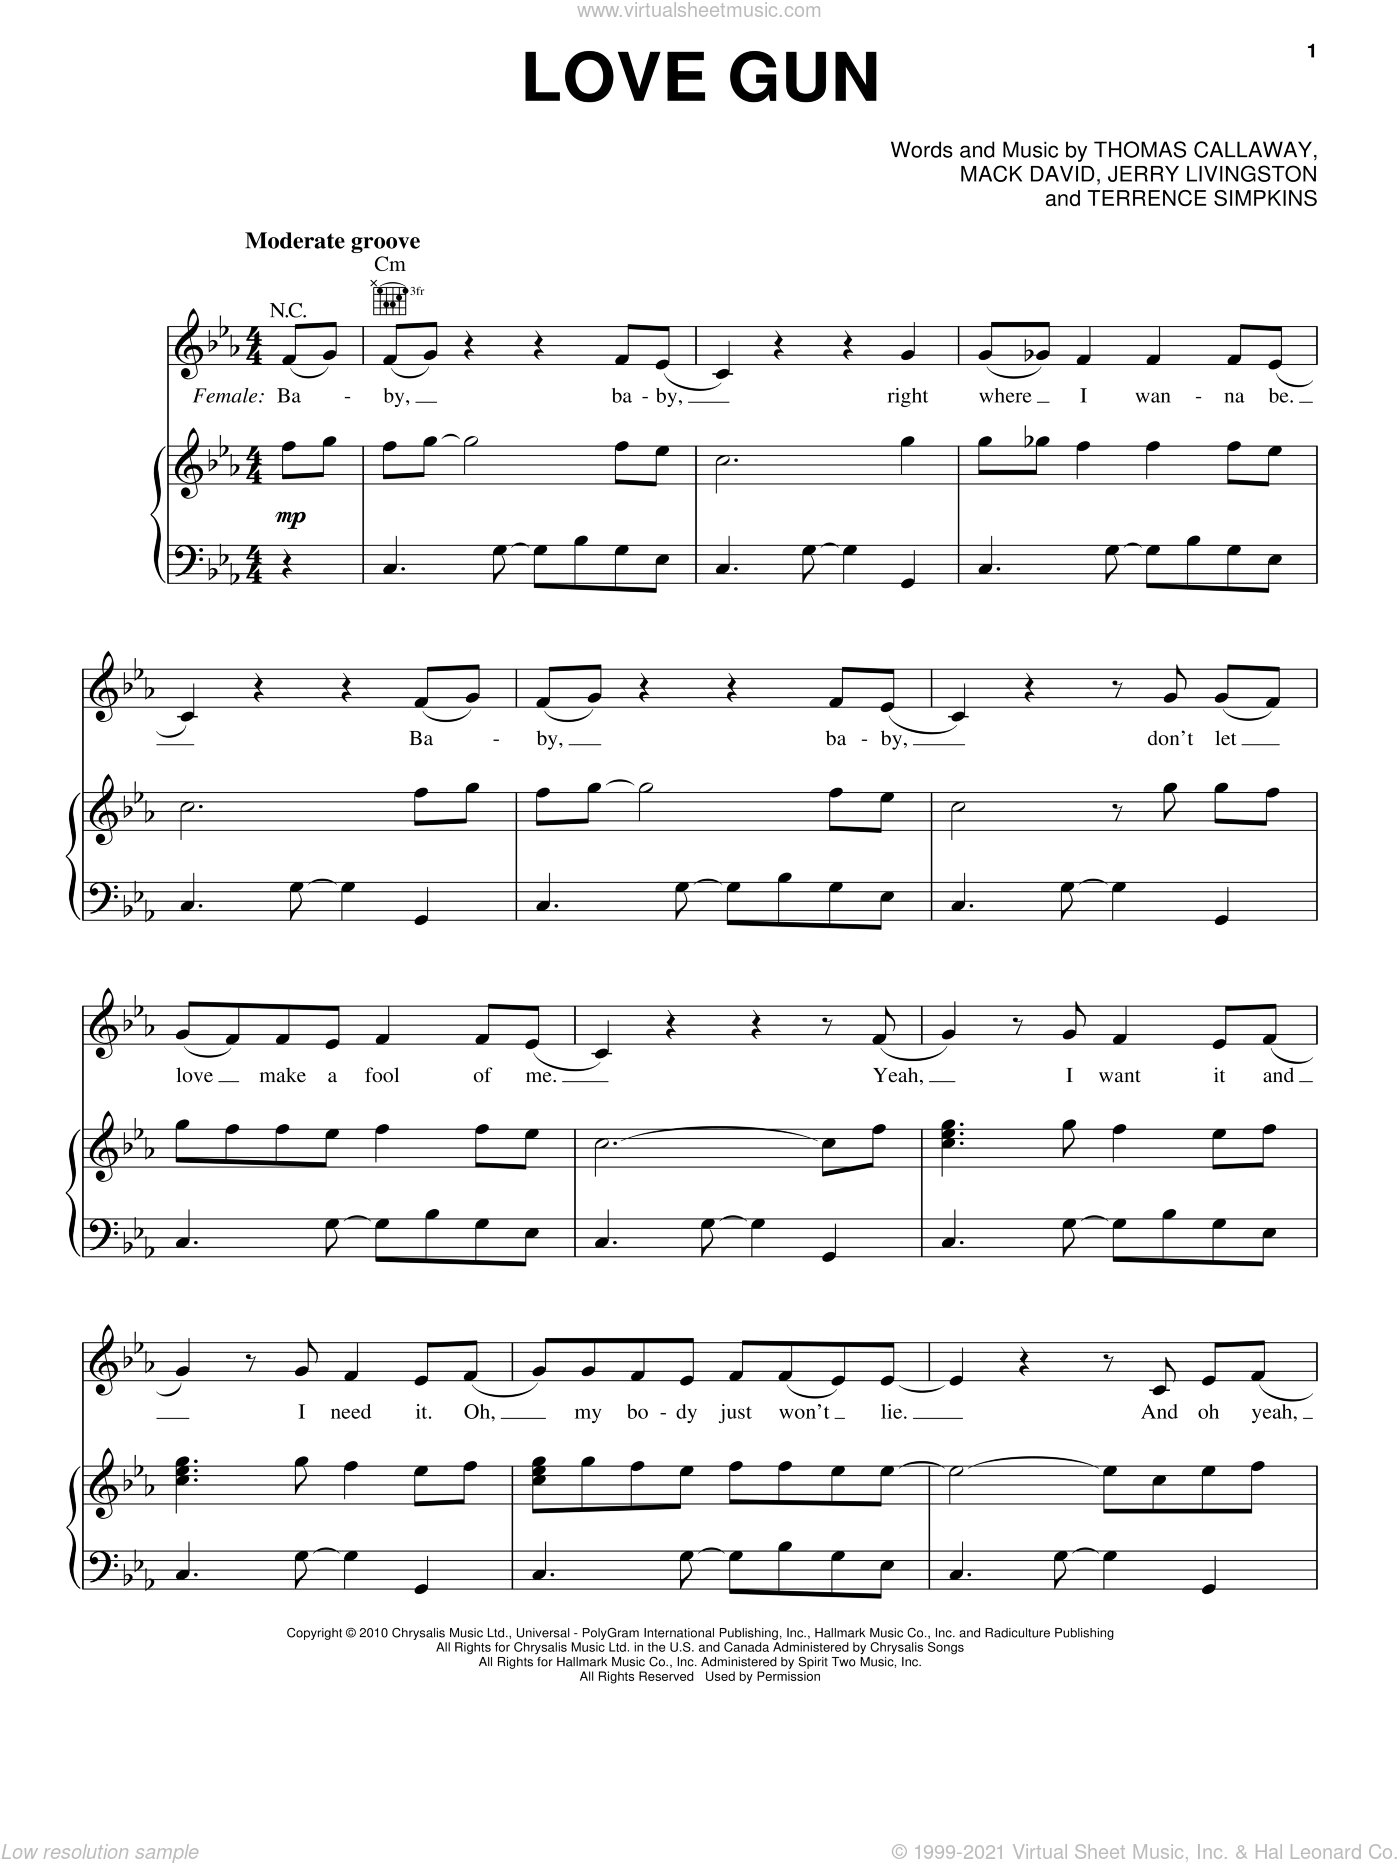 Love Gun sheet music for voice, piano or guitar by Cee Lo Green, Jerry Livingston, Mack David, Terrence Simpkins and Thomas Callaway, intermediate skill level